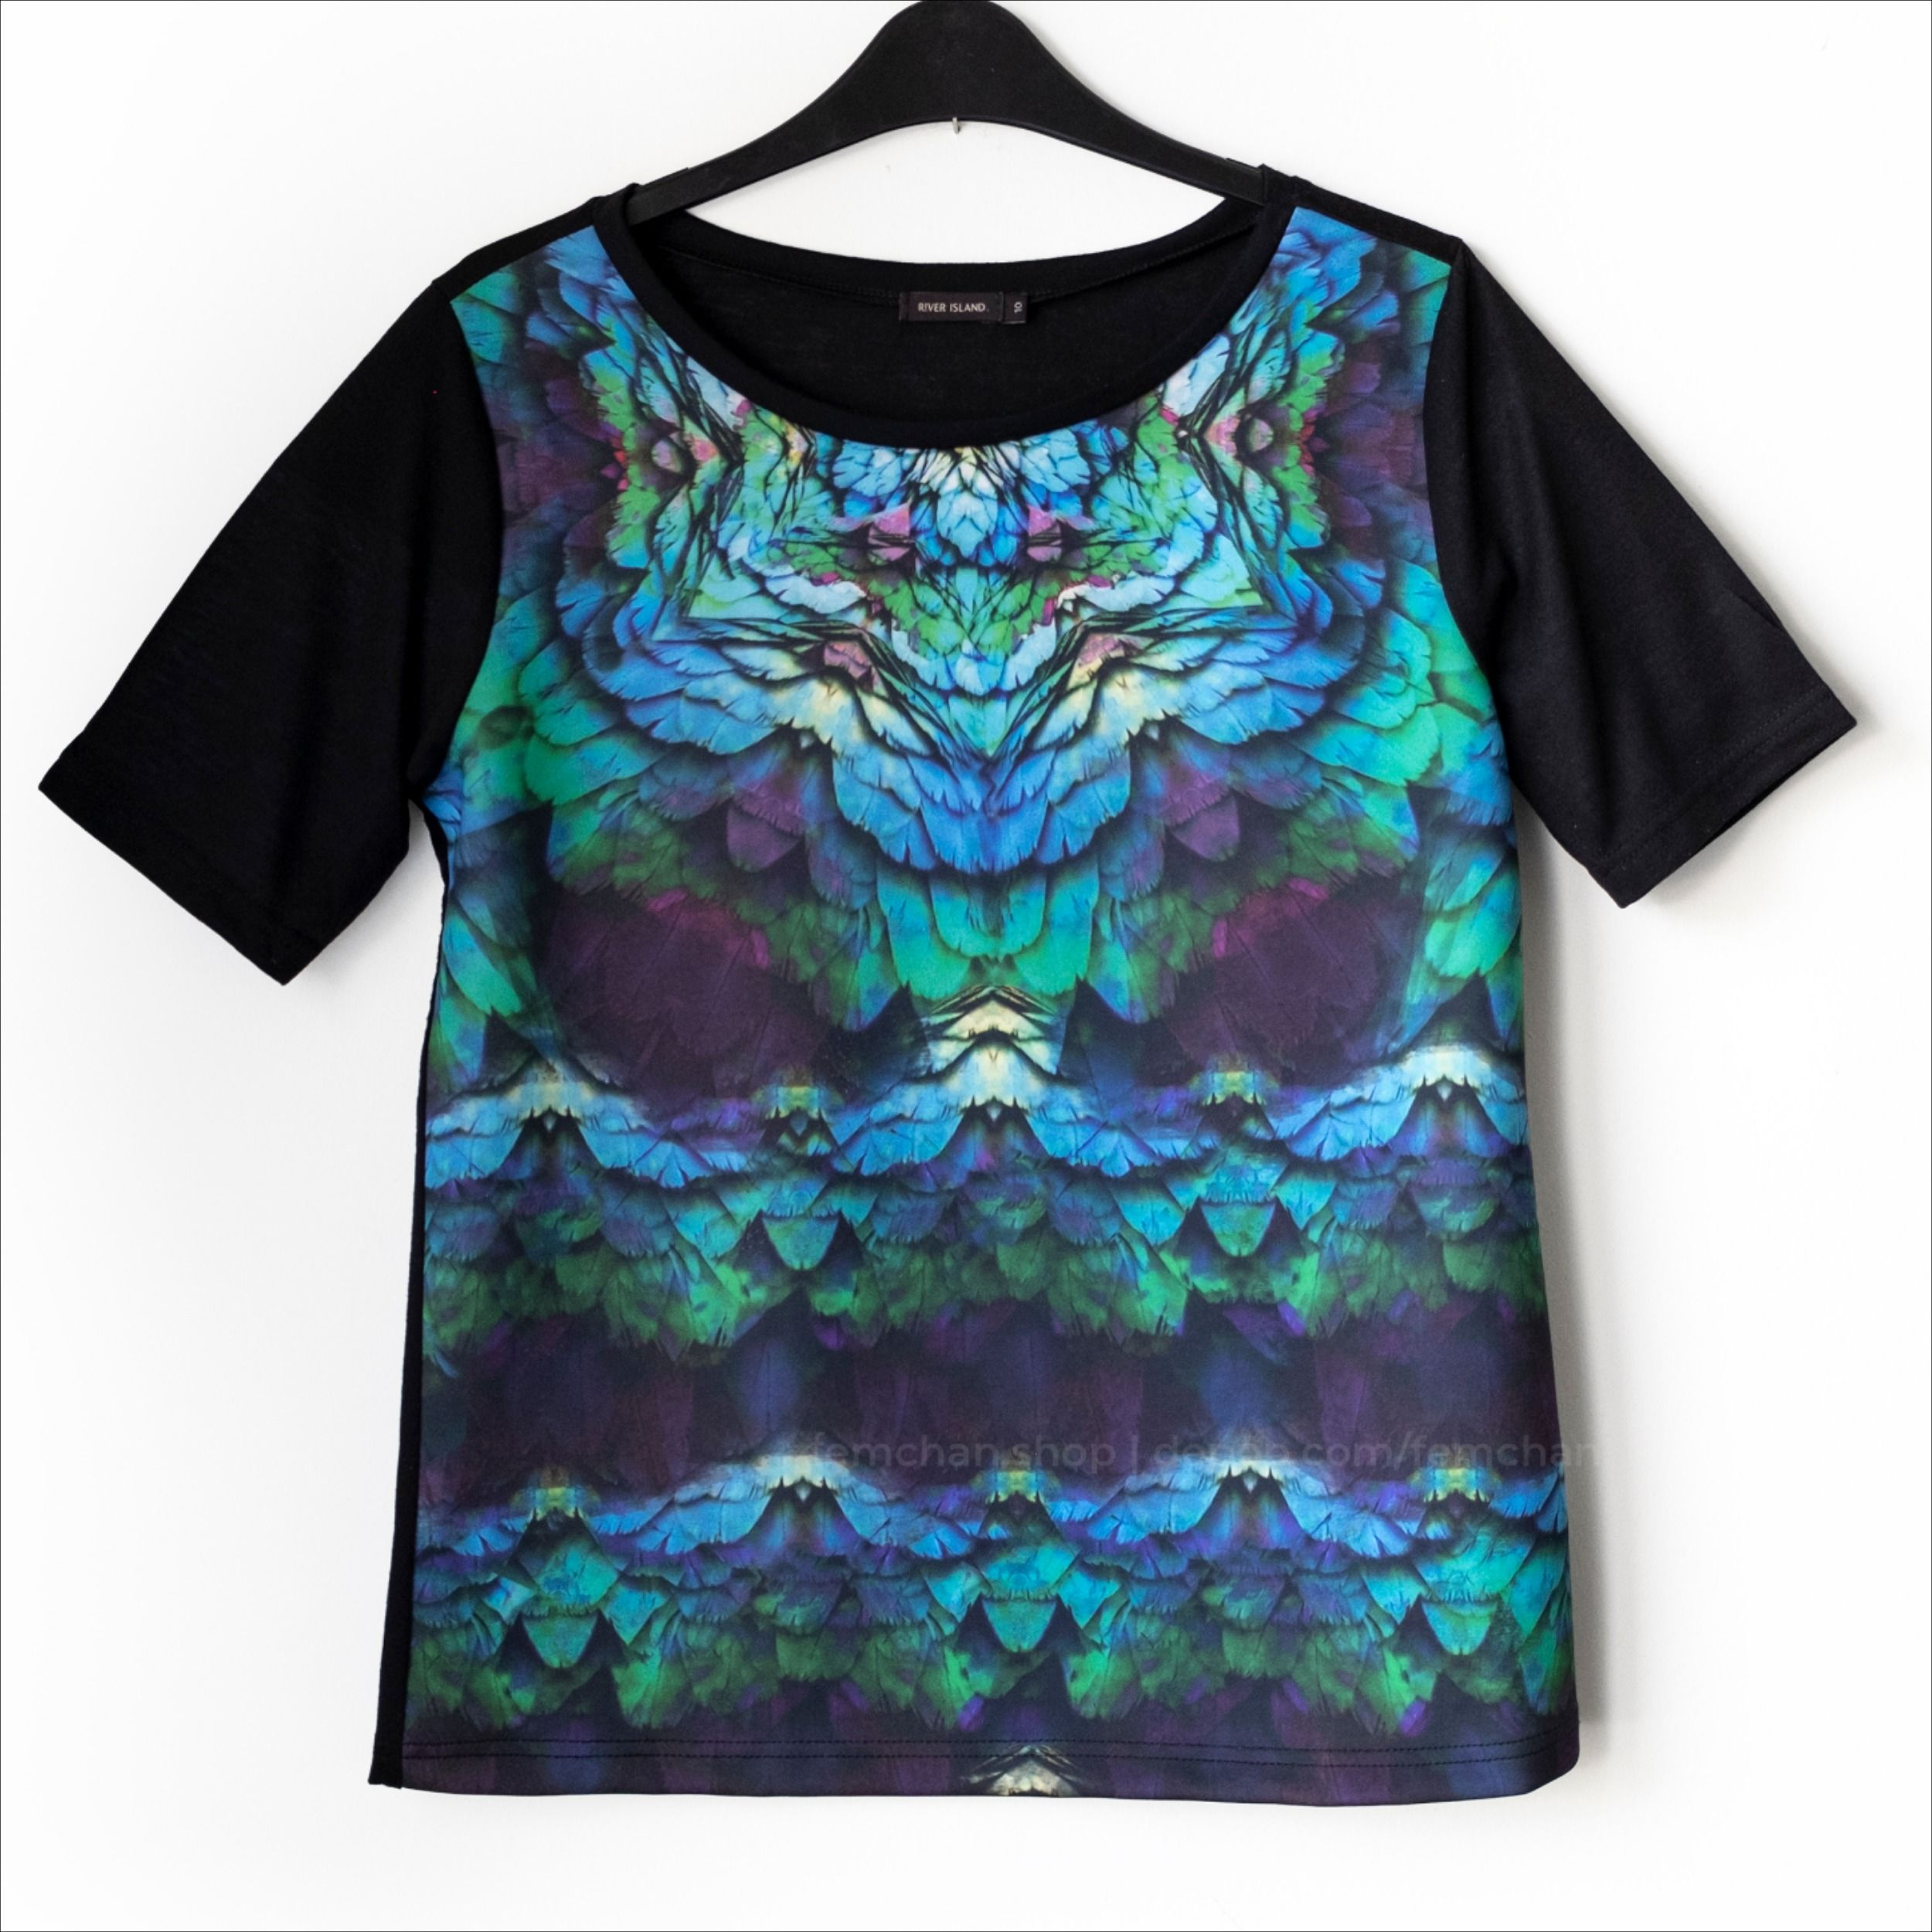 Black t-shirt with gorgeously vibrant digital feather print panel in scuba material. 100% polyester body, 96% polyester, 4% elastane front; the back and sleeves are somewhat translucent. 2014-ish, River Island.  Size 10 (EU 38) - boxy fit  #scubatee #statementprint #featherprint #greenandpurpletee #graphictee #statementtee #kaleidoscopeprint #tshirt #pridetshirt #printedtshirt #instafashion #indieshop #tshirtkopen #koopbelgisch #depopshop #brighttee